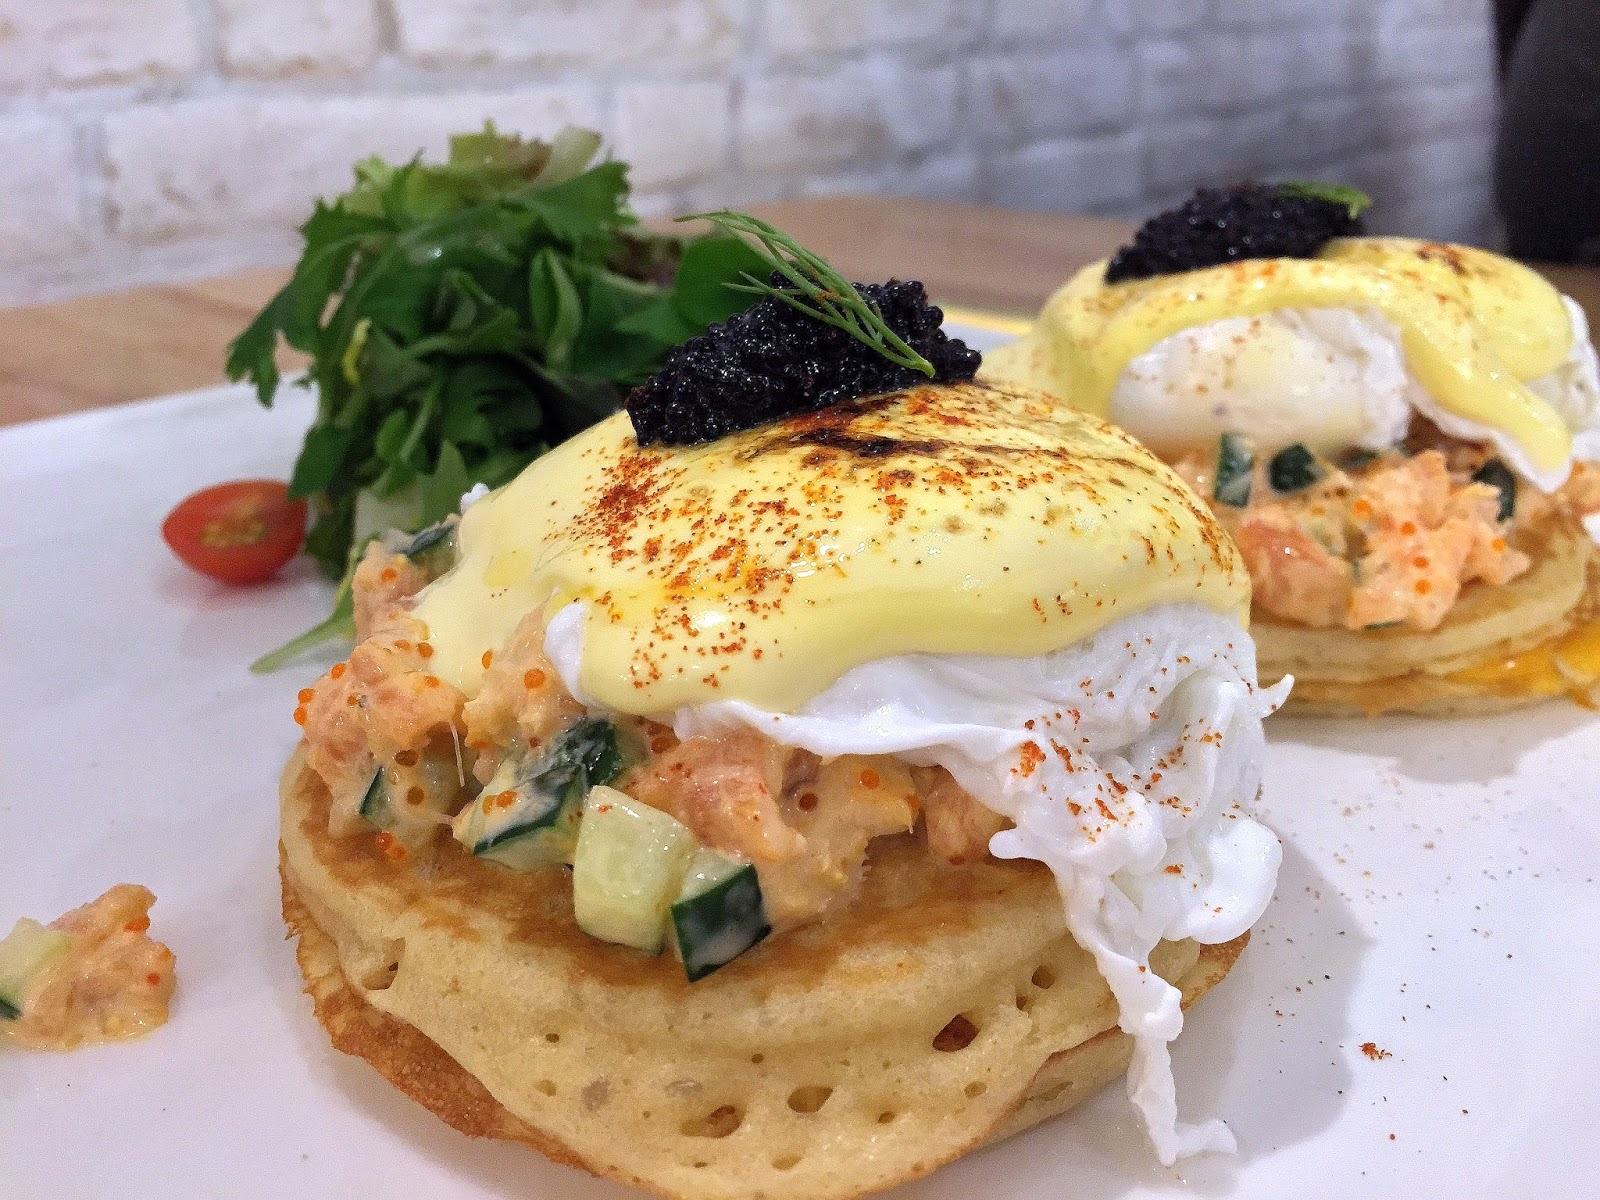 Salmon, Crab & Caviar Eggs Benedict at The Udder Pancake